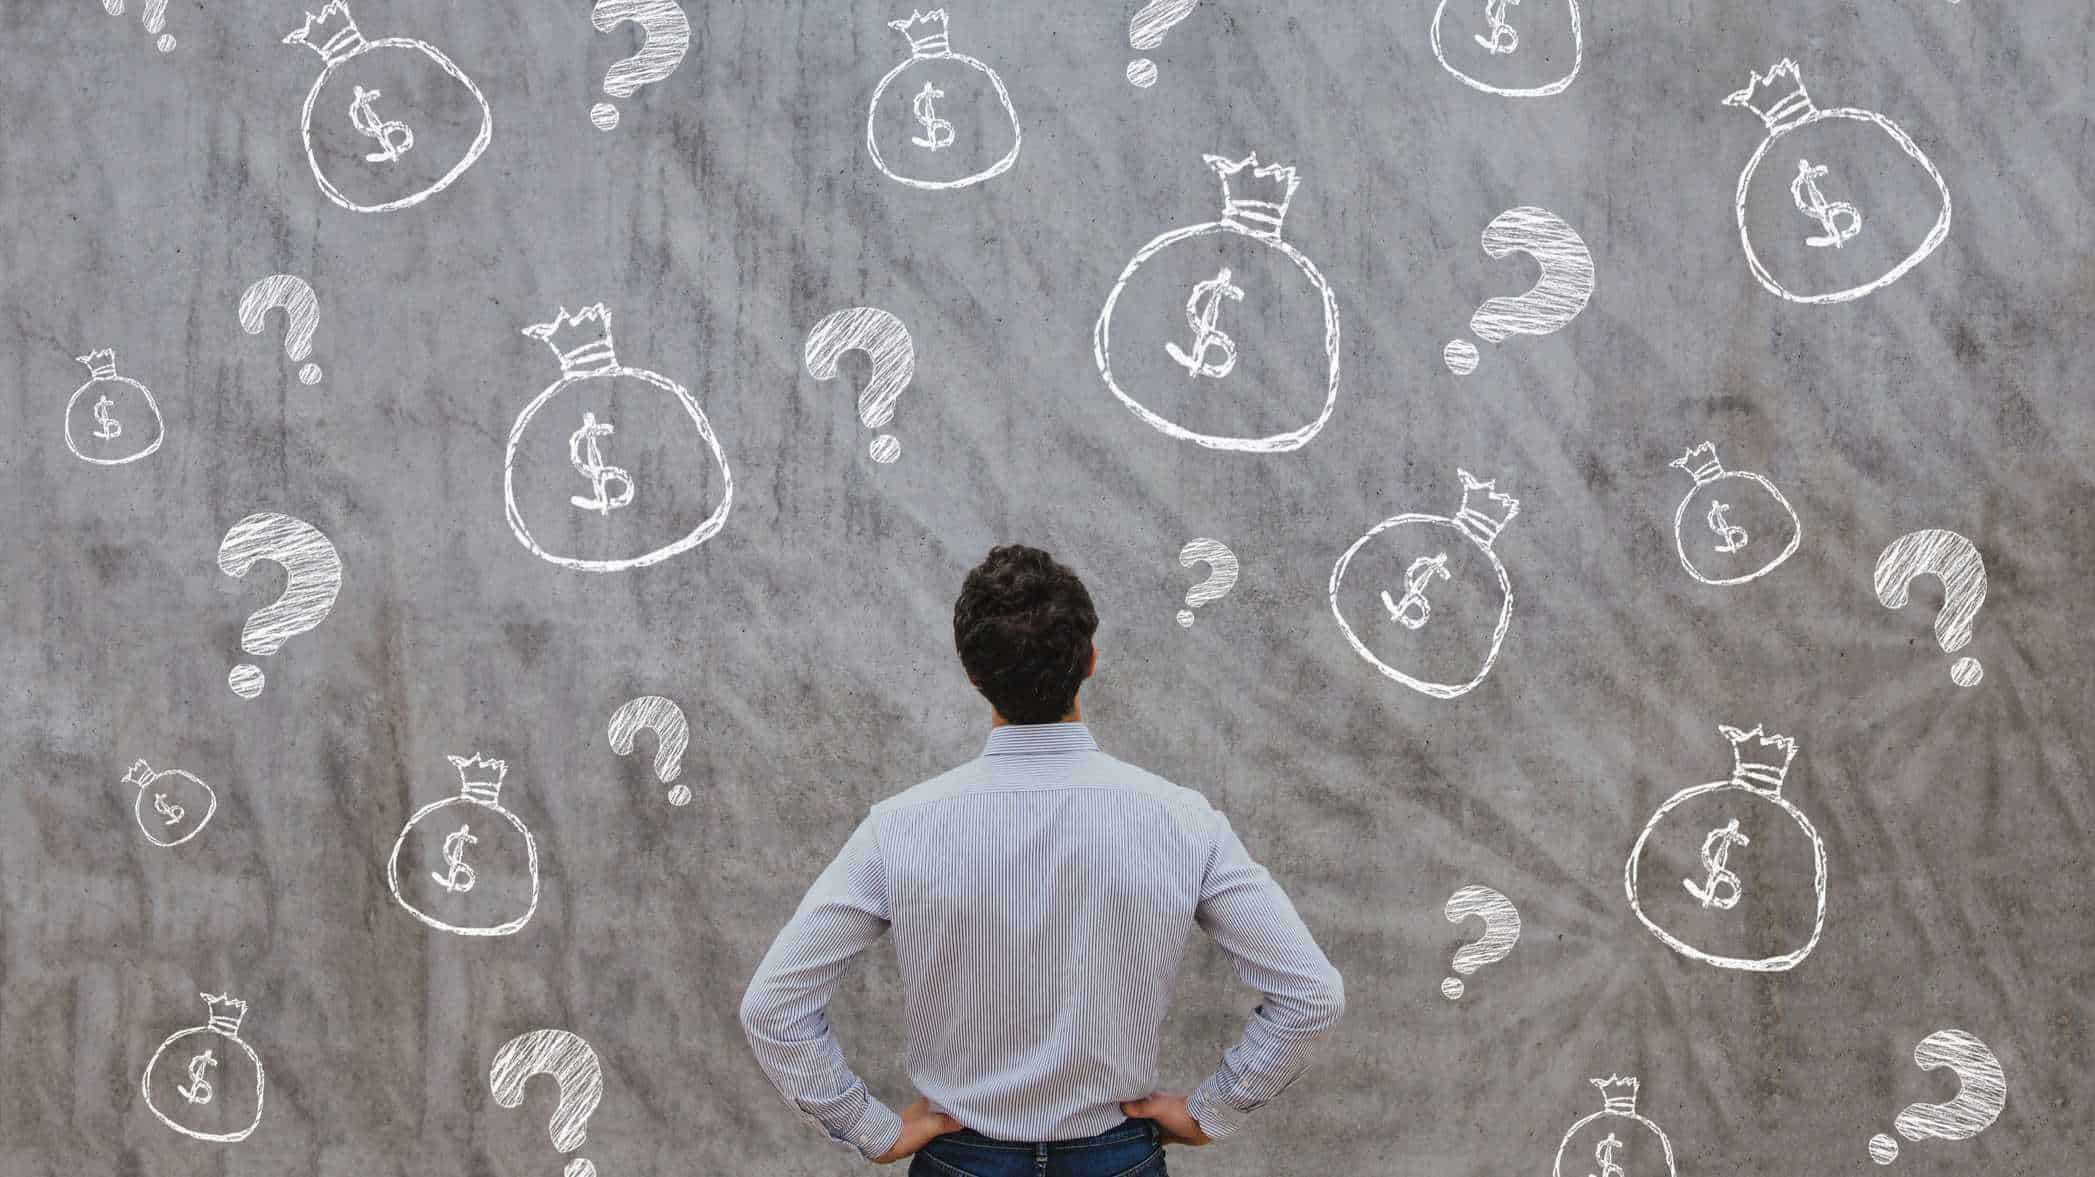 Man asking financial questions